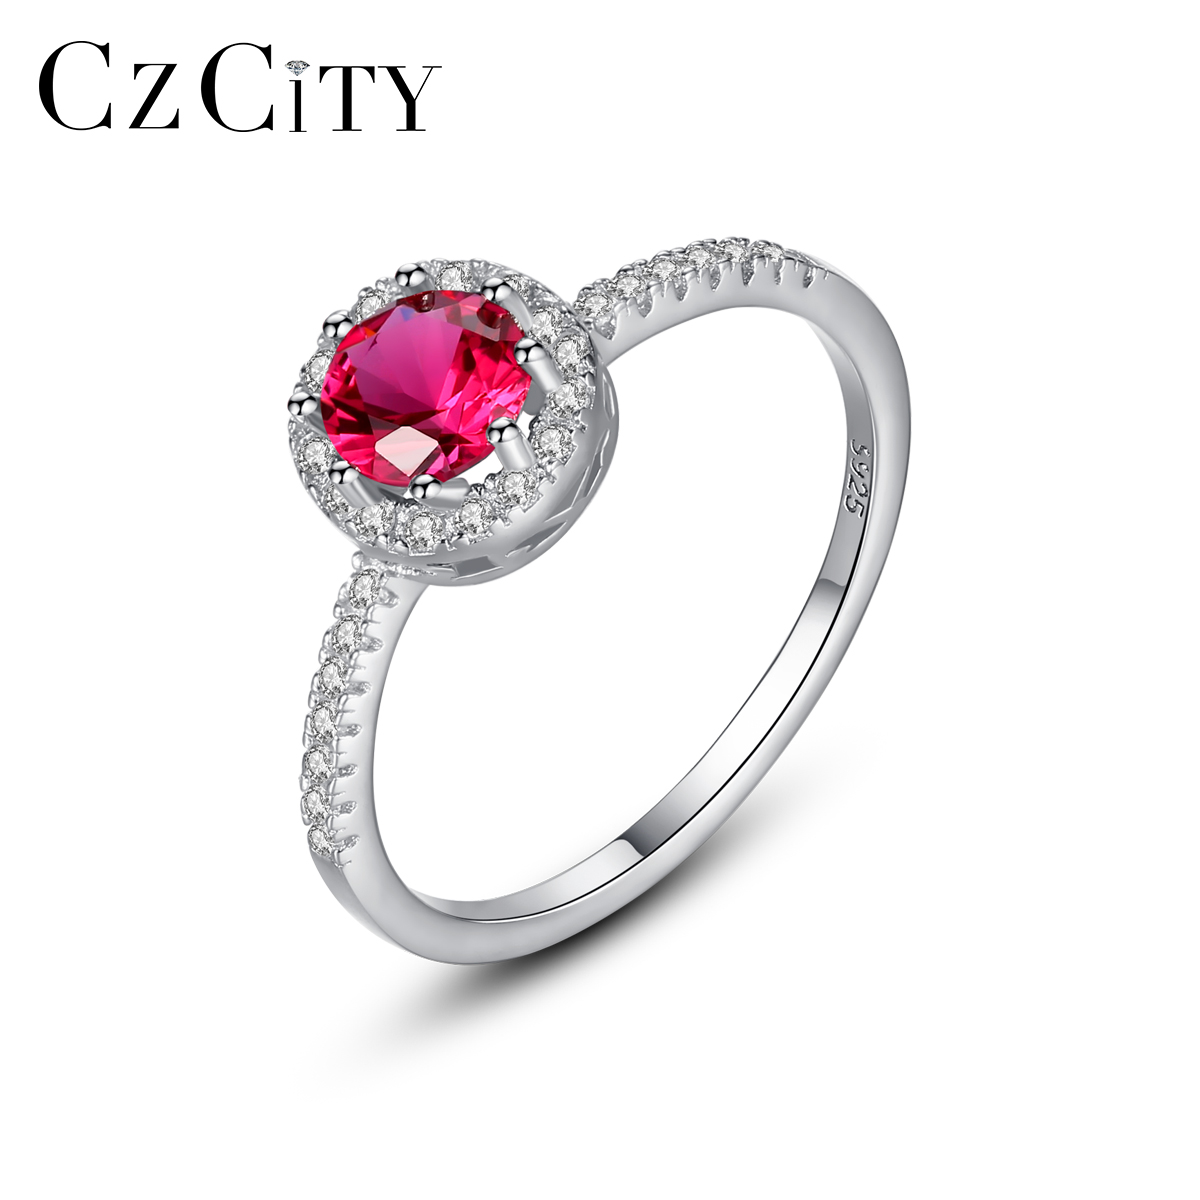 CZCITY 100% 925 Sterling Silver Engagement Red Gemstone Rings for Women Girls Wedding Party Finger Rings Fine Jewelry SR0324